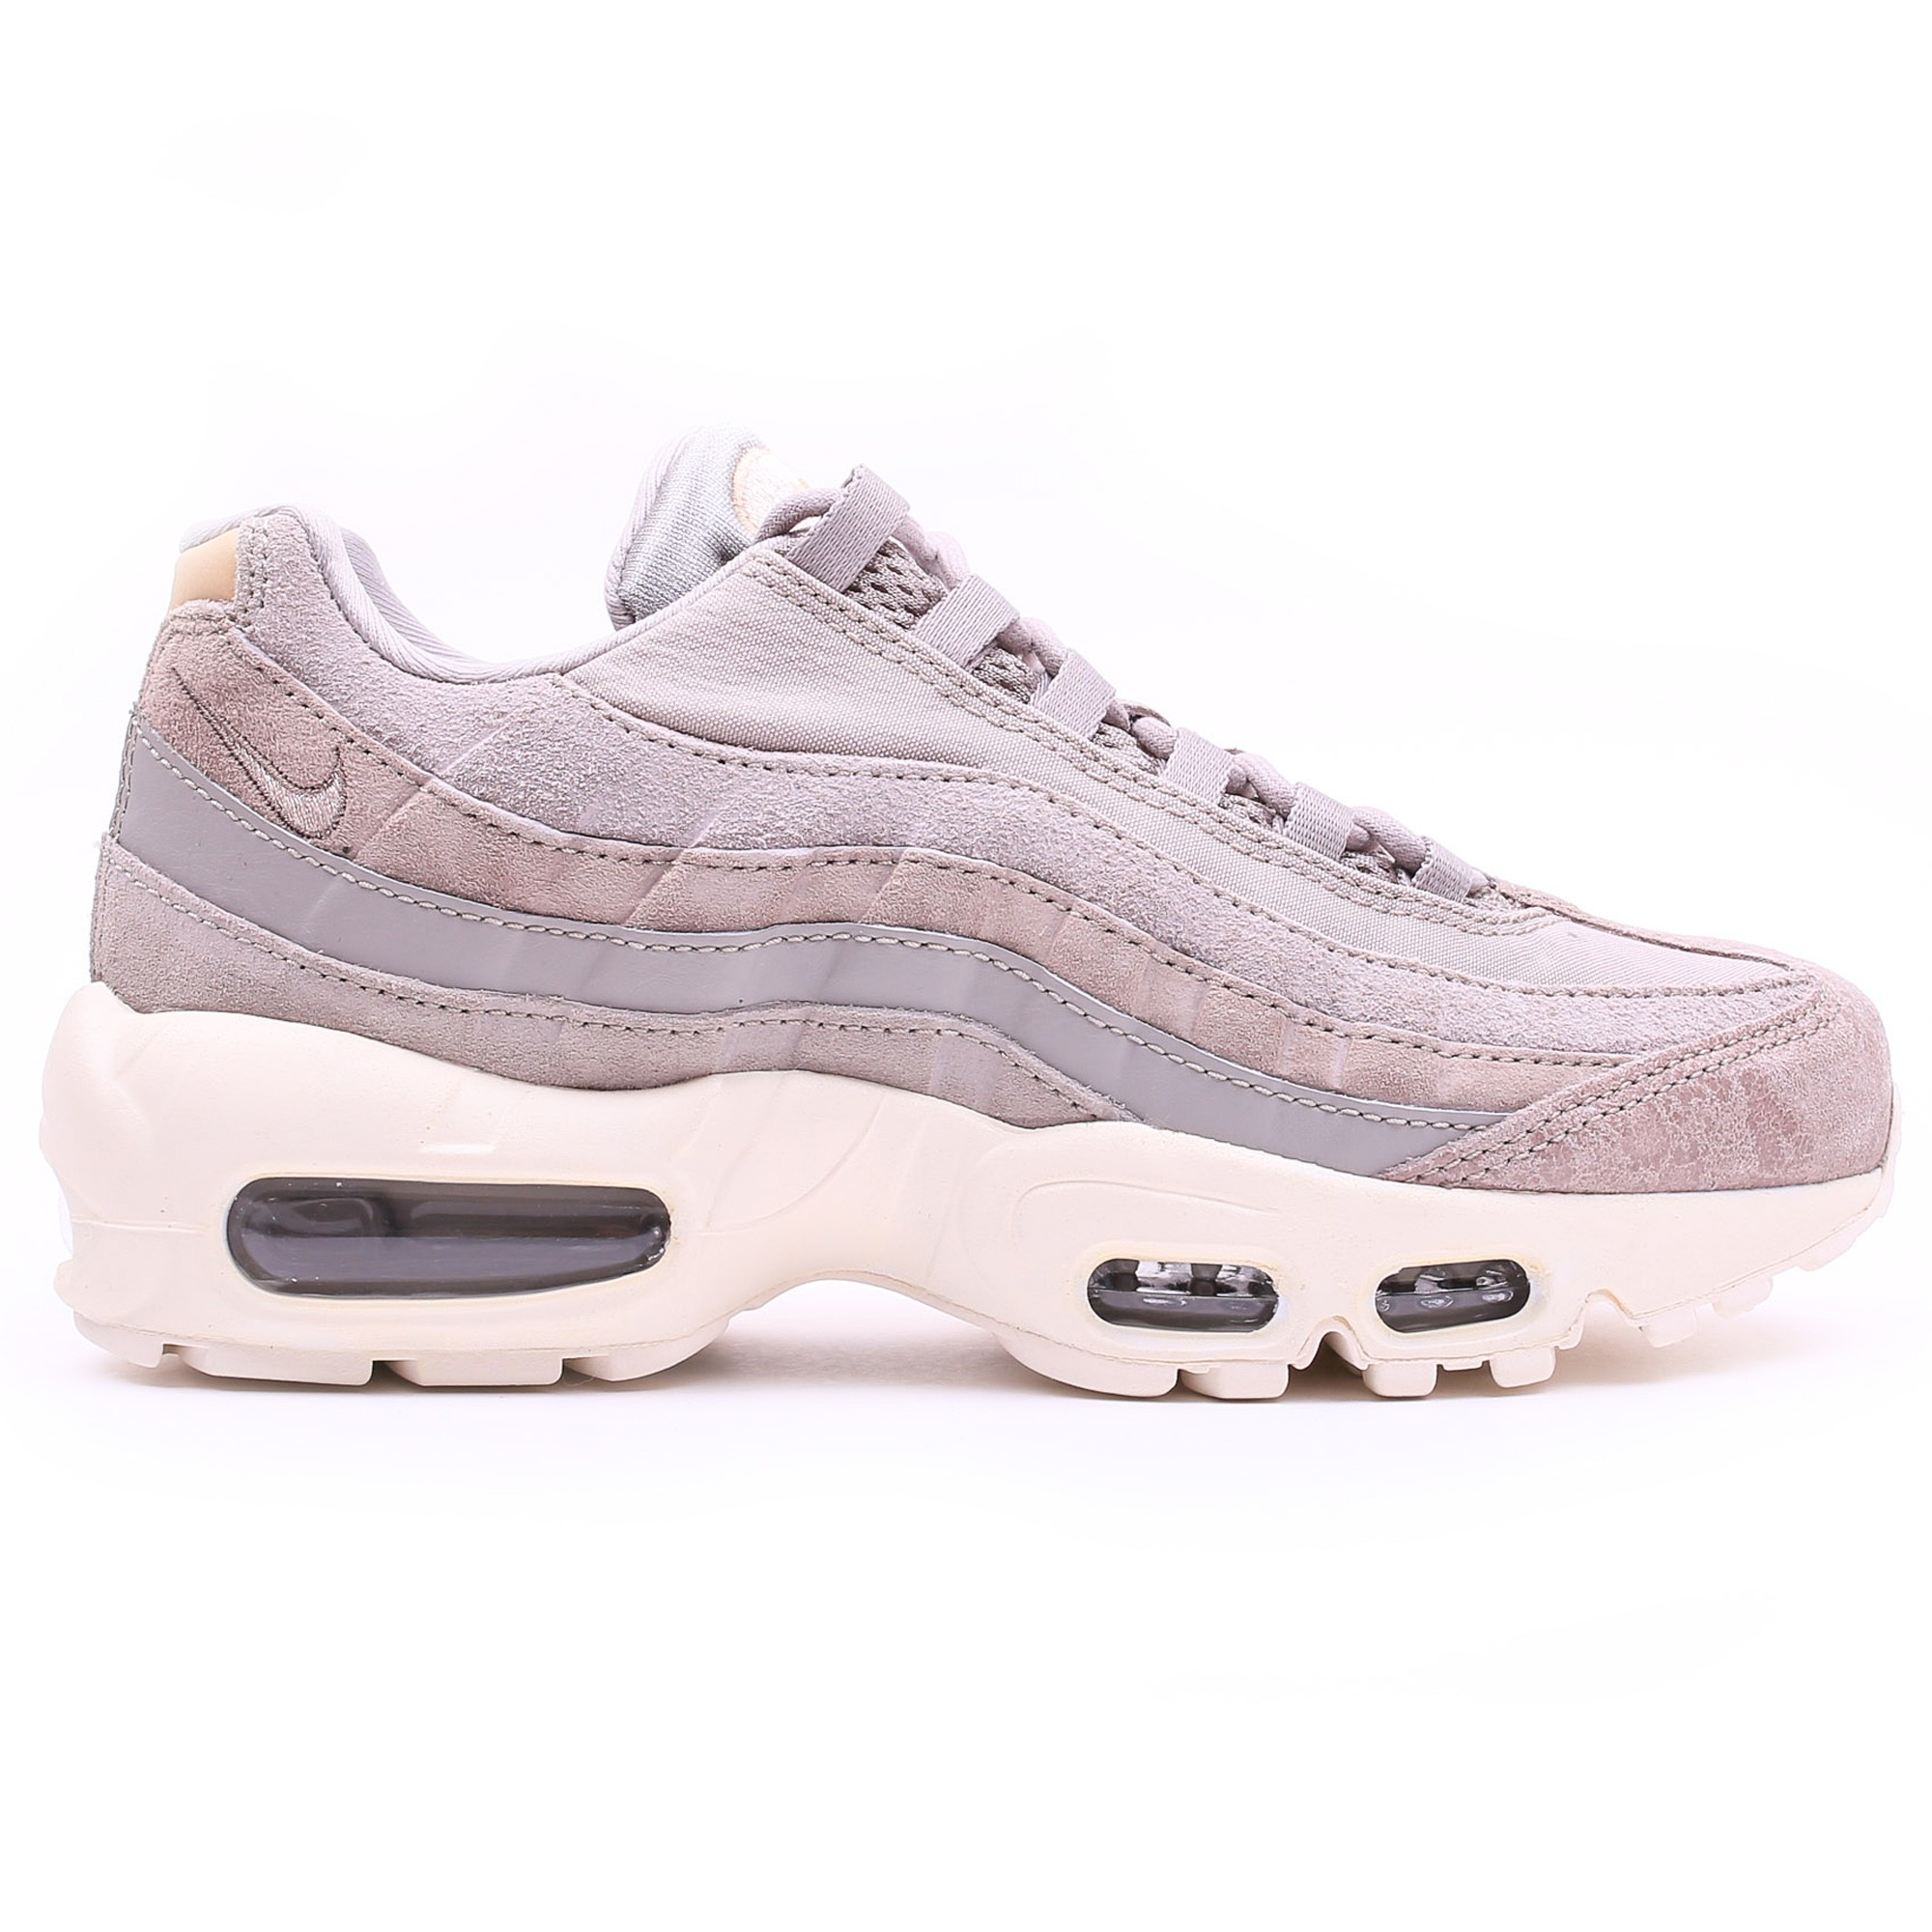 Men's Nike Air Max 95 iD. Sz 6.5 (818592 995)